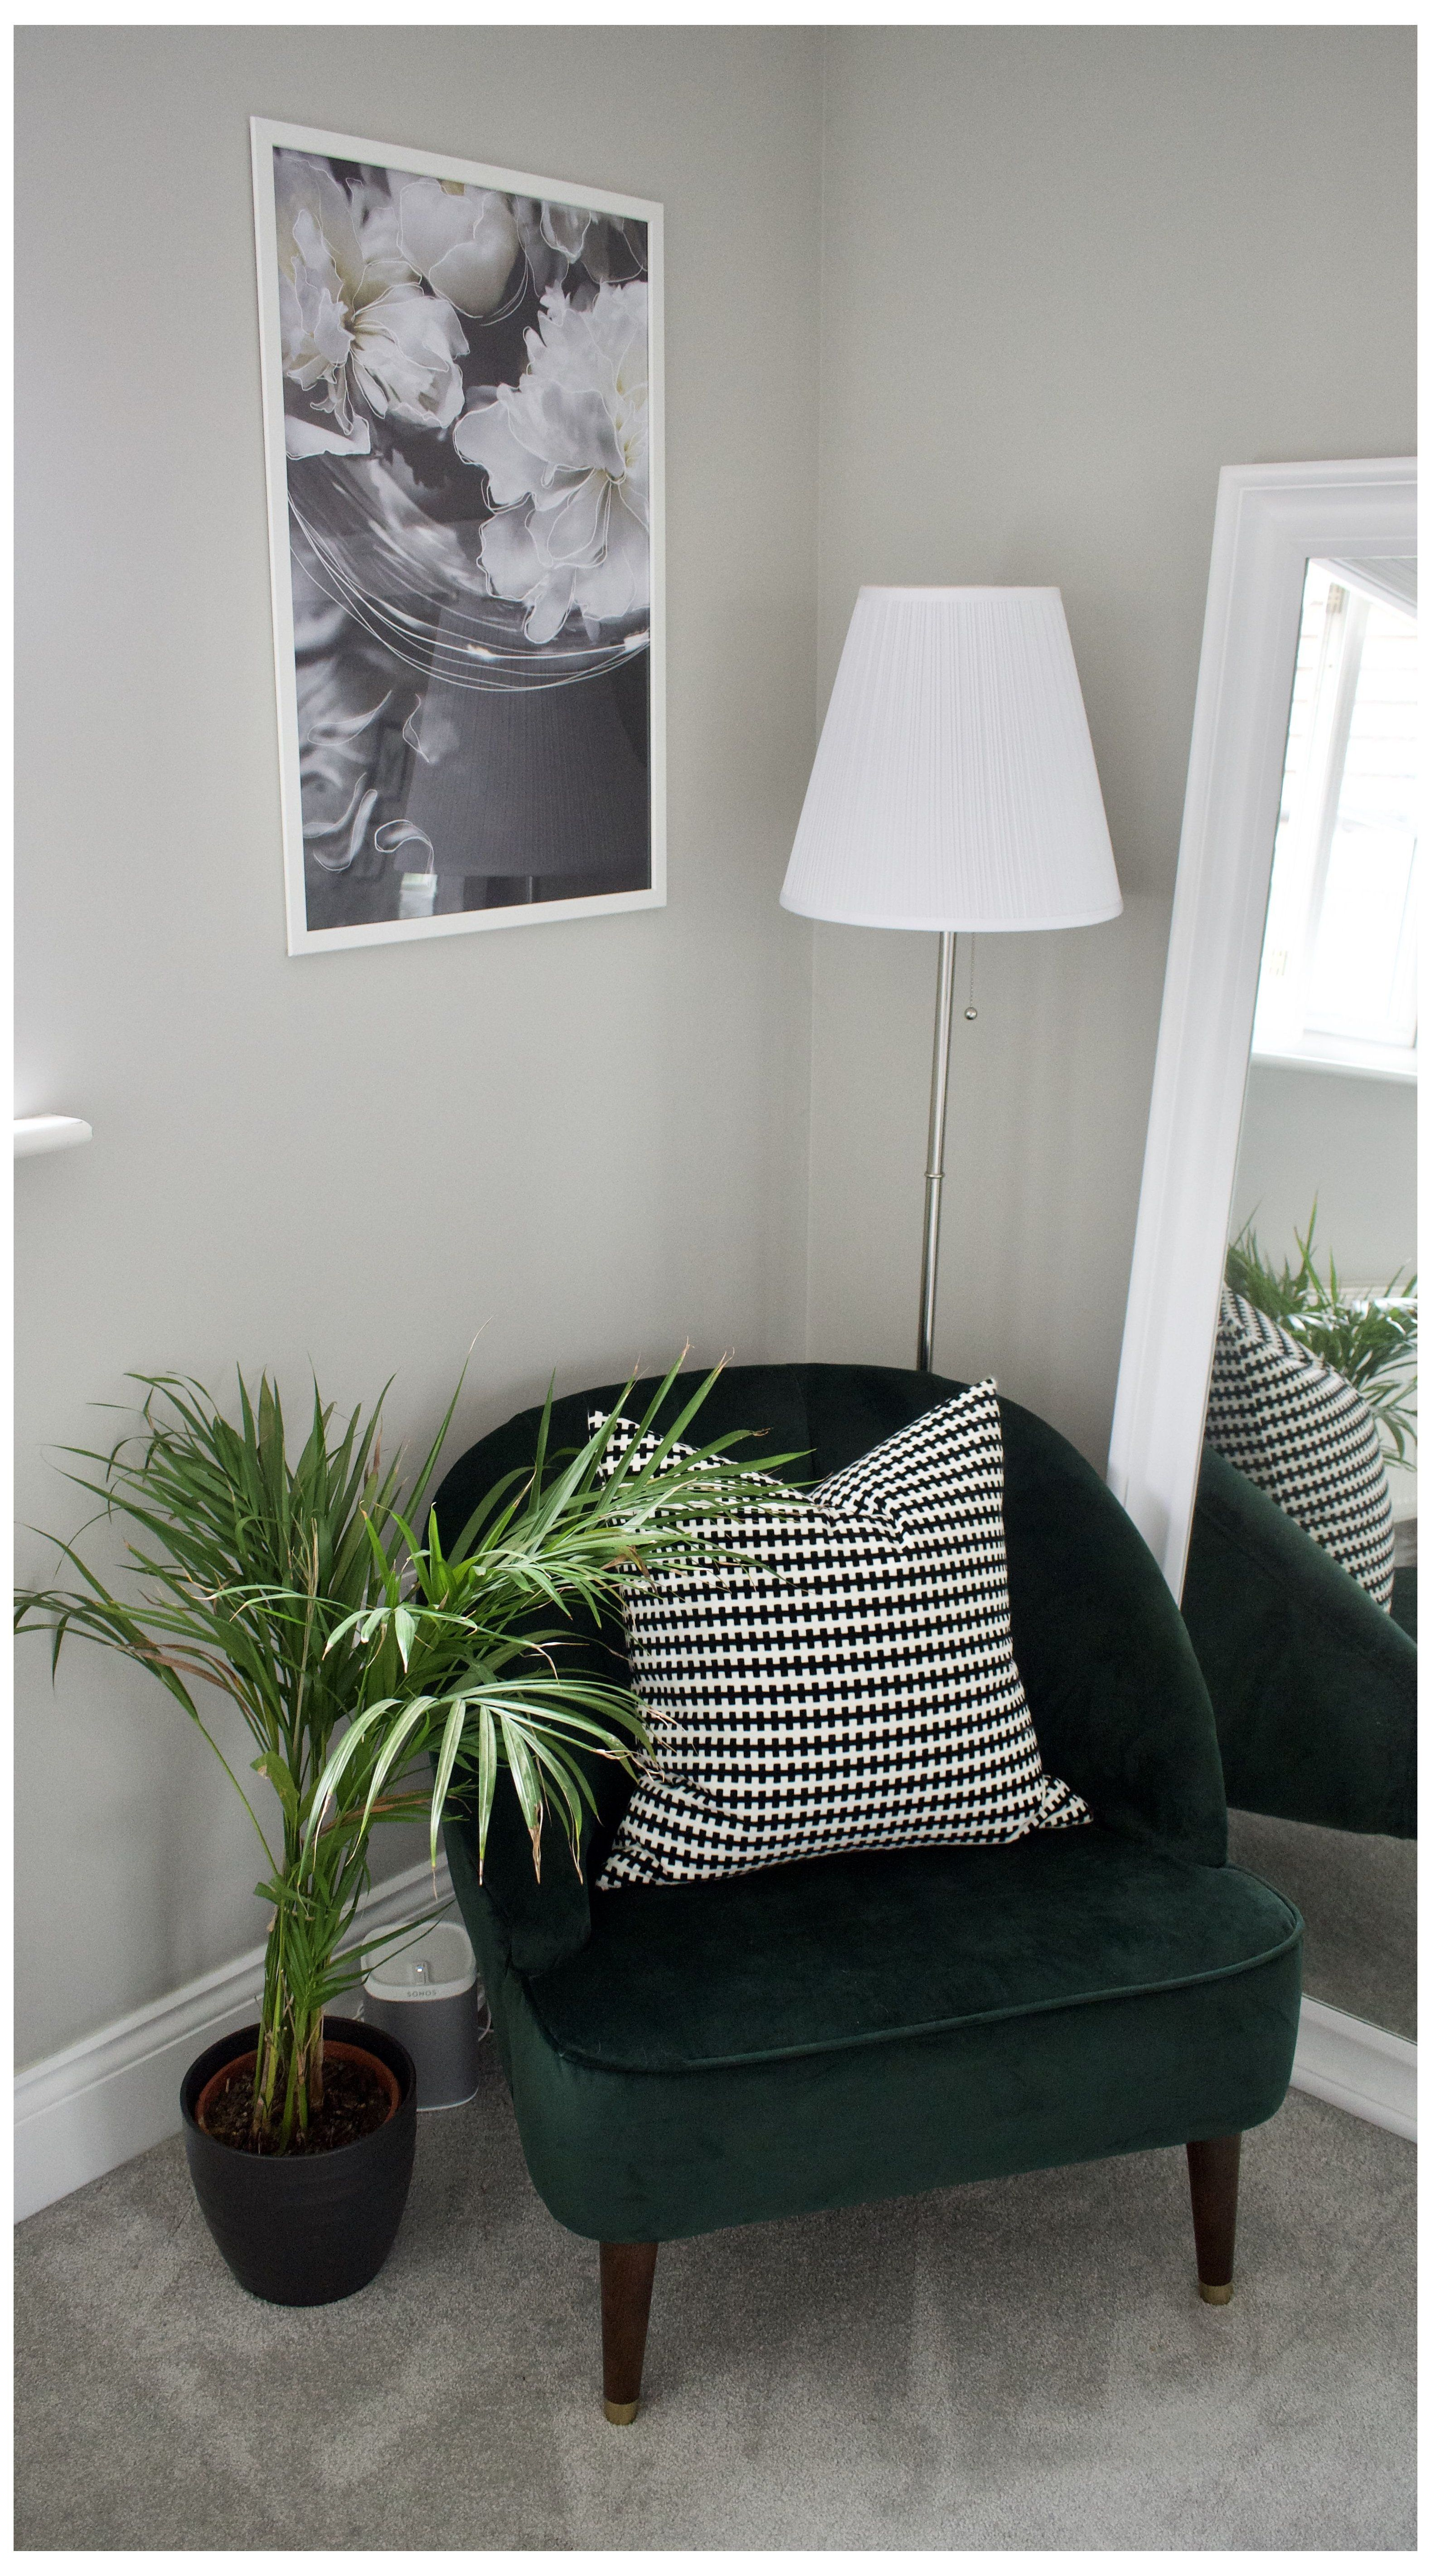 10 Of The Best Accent Chairs Rug Placement Bedroom Corner I Ve Put Together A List Of 10 Of My Favourit In 2020 Living Room Corner Corner Decor Bedroom Interior